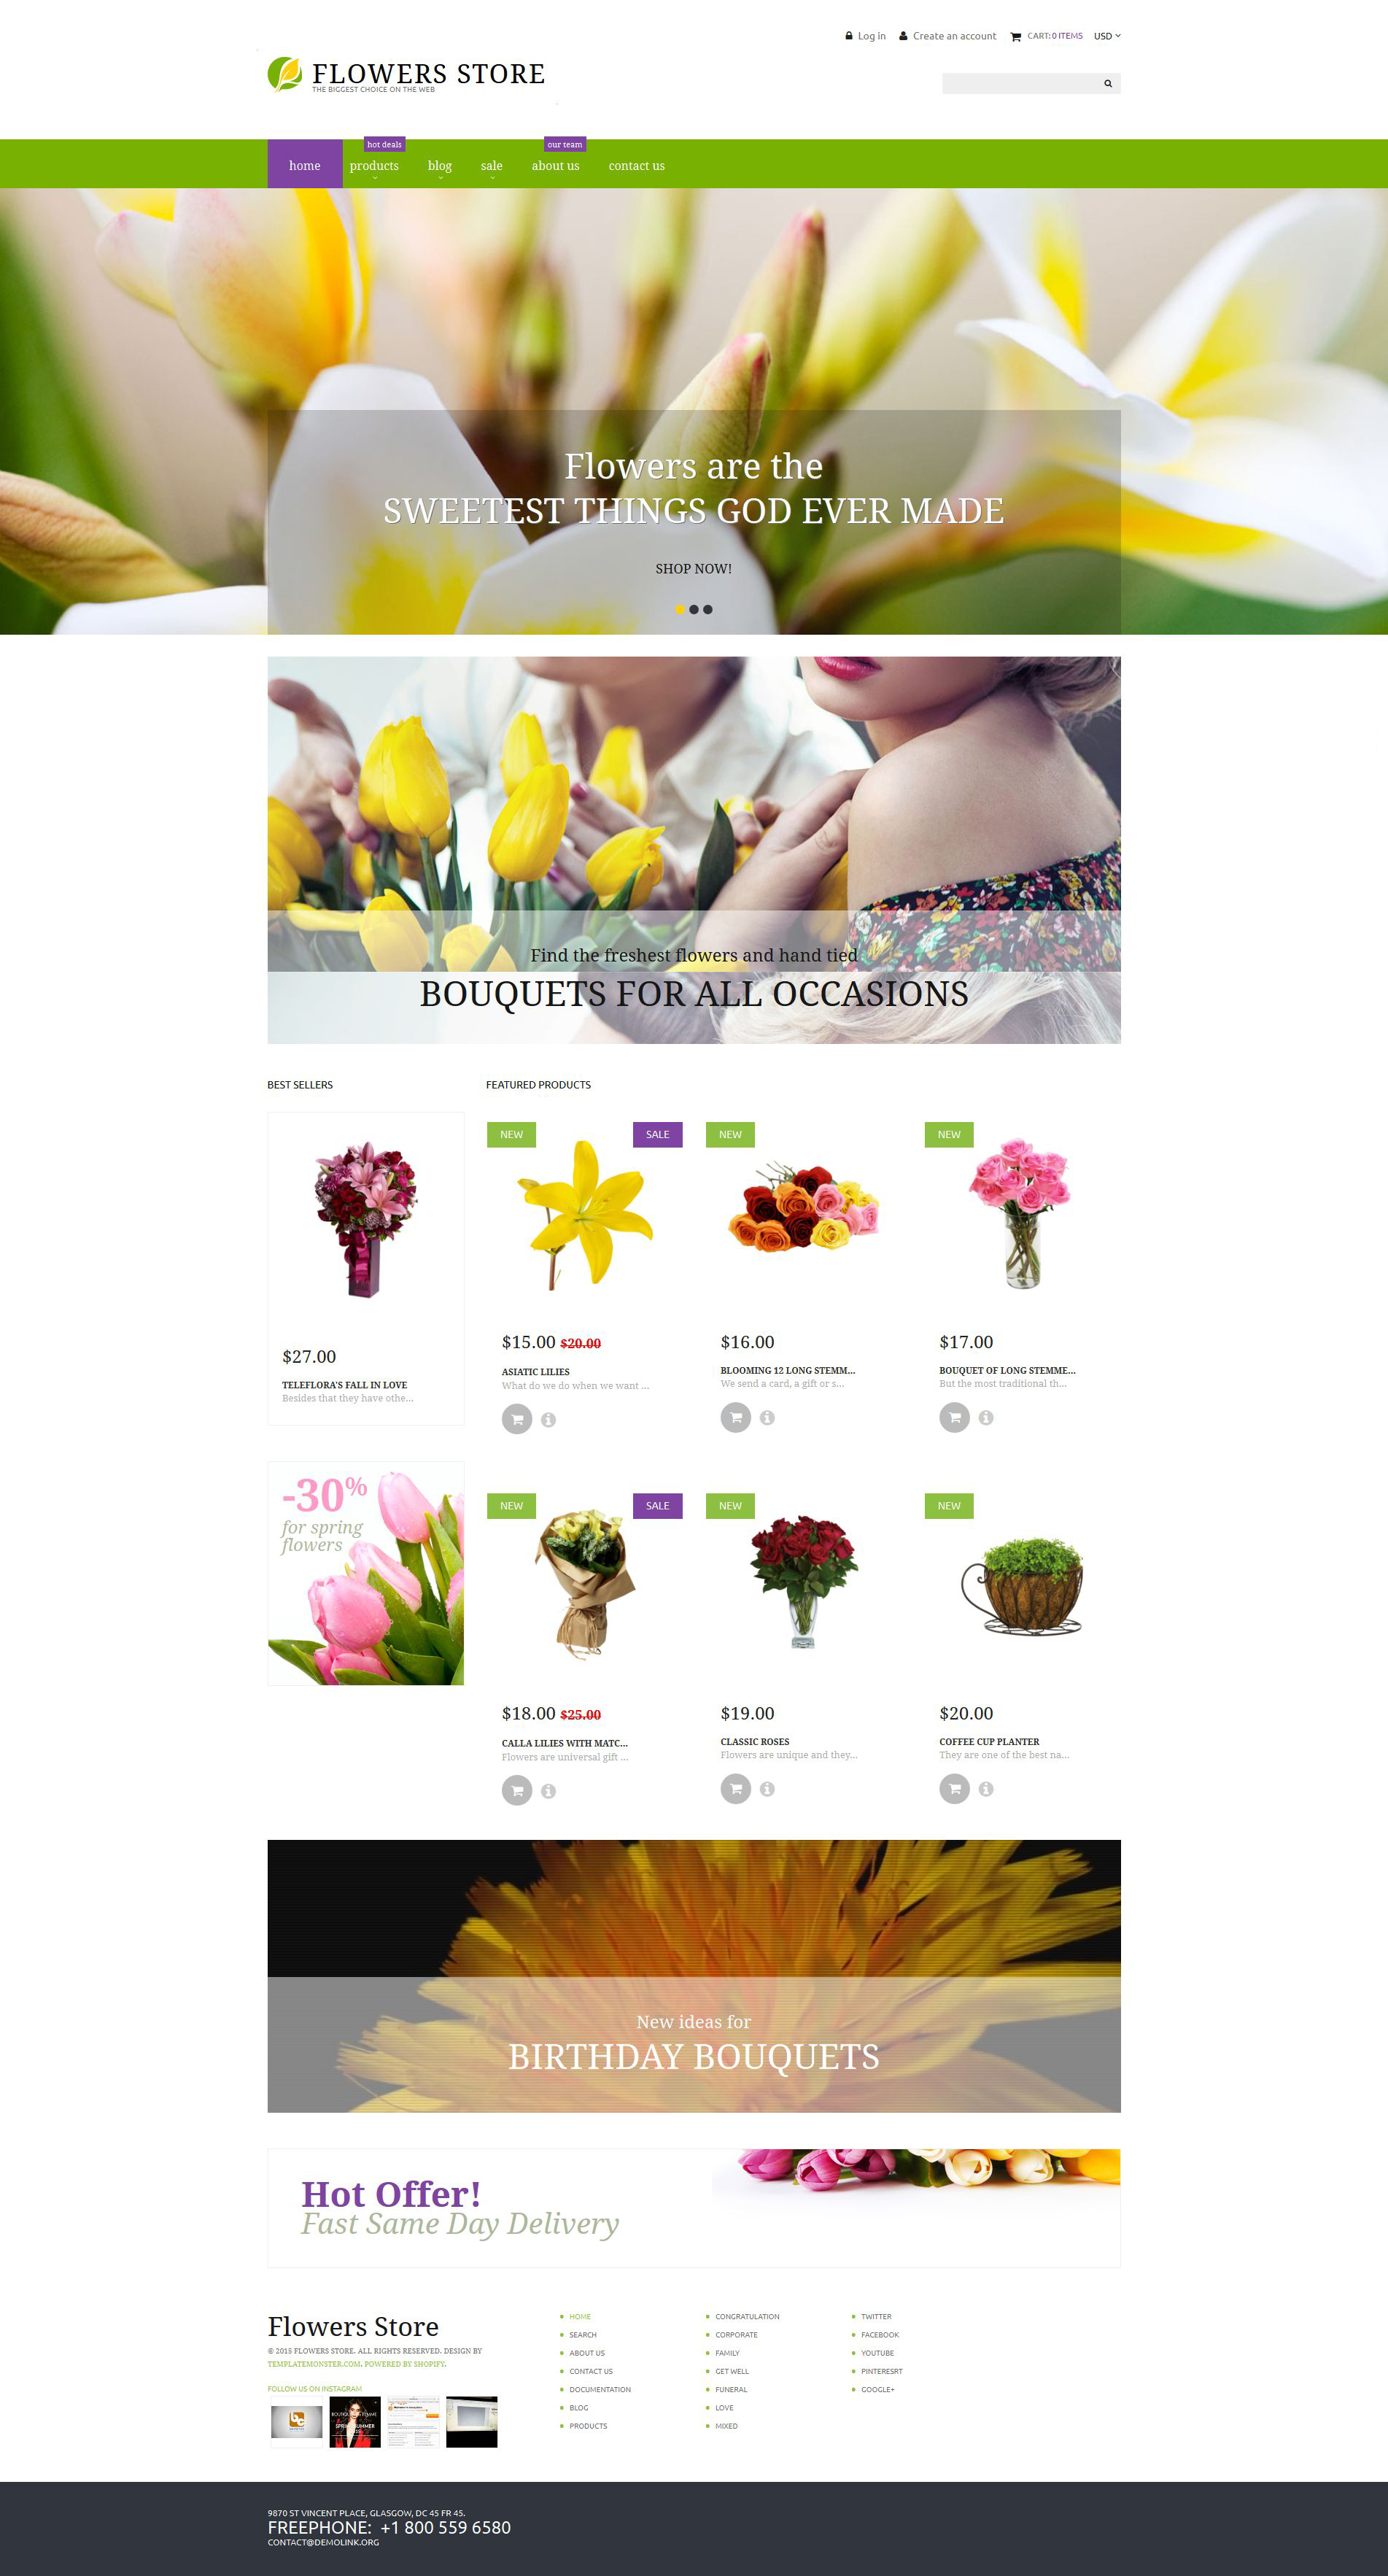 The Flower Online Store Shopify Design 53138, one of the best Shopify themes of its kind (flowers), also known as flower online store Shopify template, flowers Shopify template, gifts Shopify template, birthday Shopify template, wedding Shopify template, engagement Shopify template, occasions Shopify template, specials Shopify template, exclusive Shopify template, roses Shopify template, lilies Shopify template, orchid Shopify template, chrysanthemum Shopify template, tulip Shopify template, order Shopify template, services Shopify template, order Shopify template, packing Shopify template, present Shopify template, cards Shopify template, holiday Shopify template, celebration Shopify template, catalog Shopify template, delivery Shopify template, chamomile Shopify template, daisy Shopify template, rose Shopify template, bouquet Shopify template, wrapping and related with flower online store, flowers, gifts, birthday, wedding, engagement, occasions, specials, exclusive, roses, lilies, orchid, chrysanthemum, tulip, order, services, order, packing, present, cards, holiday, celebration, catalog, delivery, chamomile, daisy, rose, bouquet, wrapping, etc.